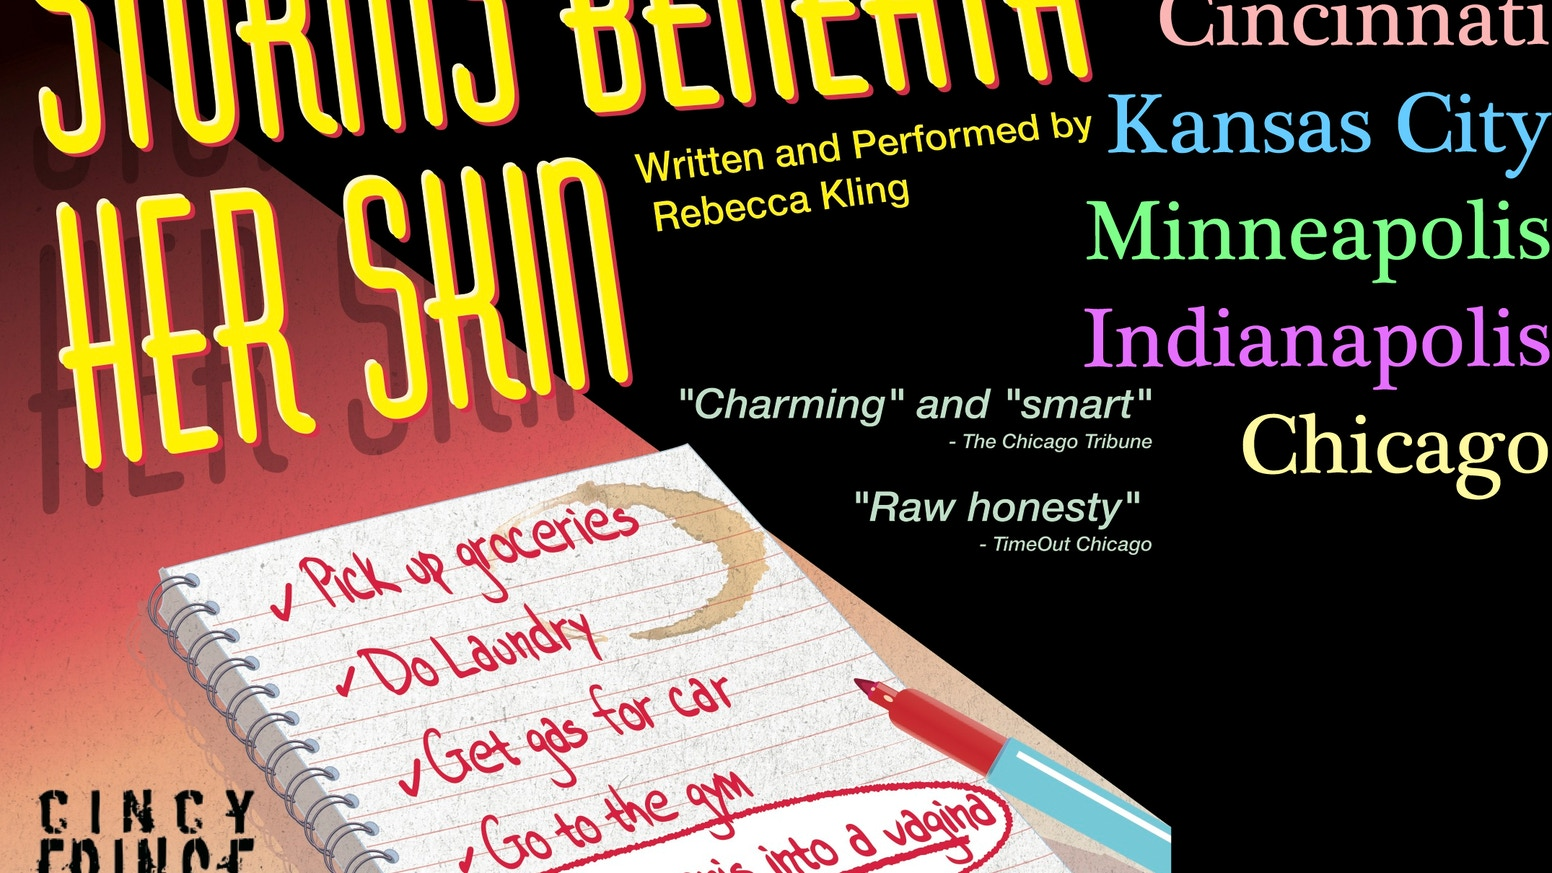 Storms Beneath Her Skin - Midwest Tour 2012 by Rebecca Kling » WOW